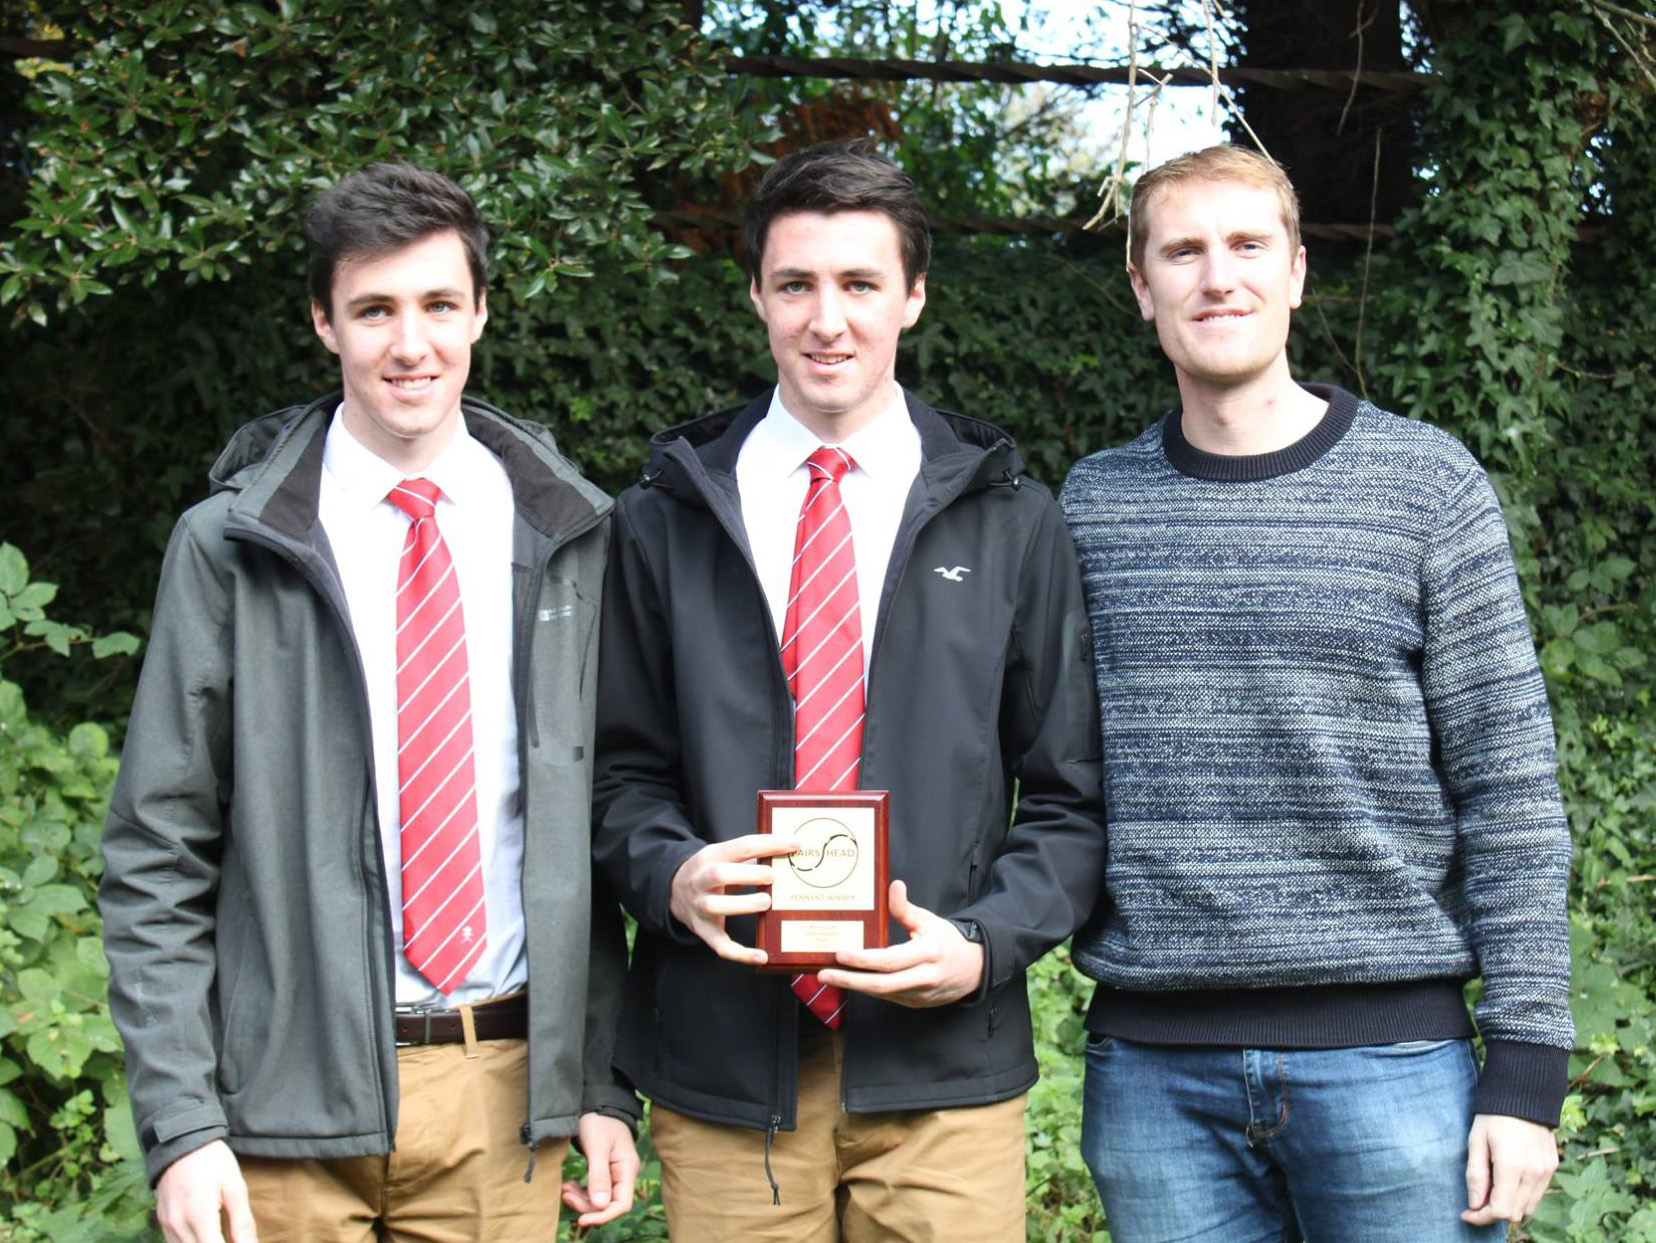 The brothers receive their prize from Olympian George Nash